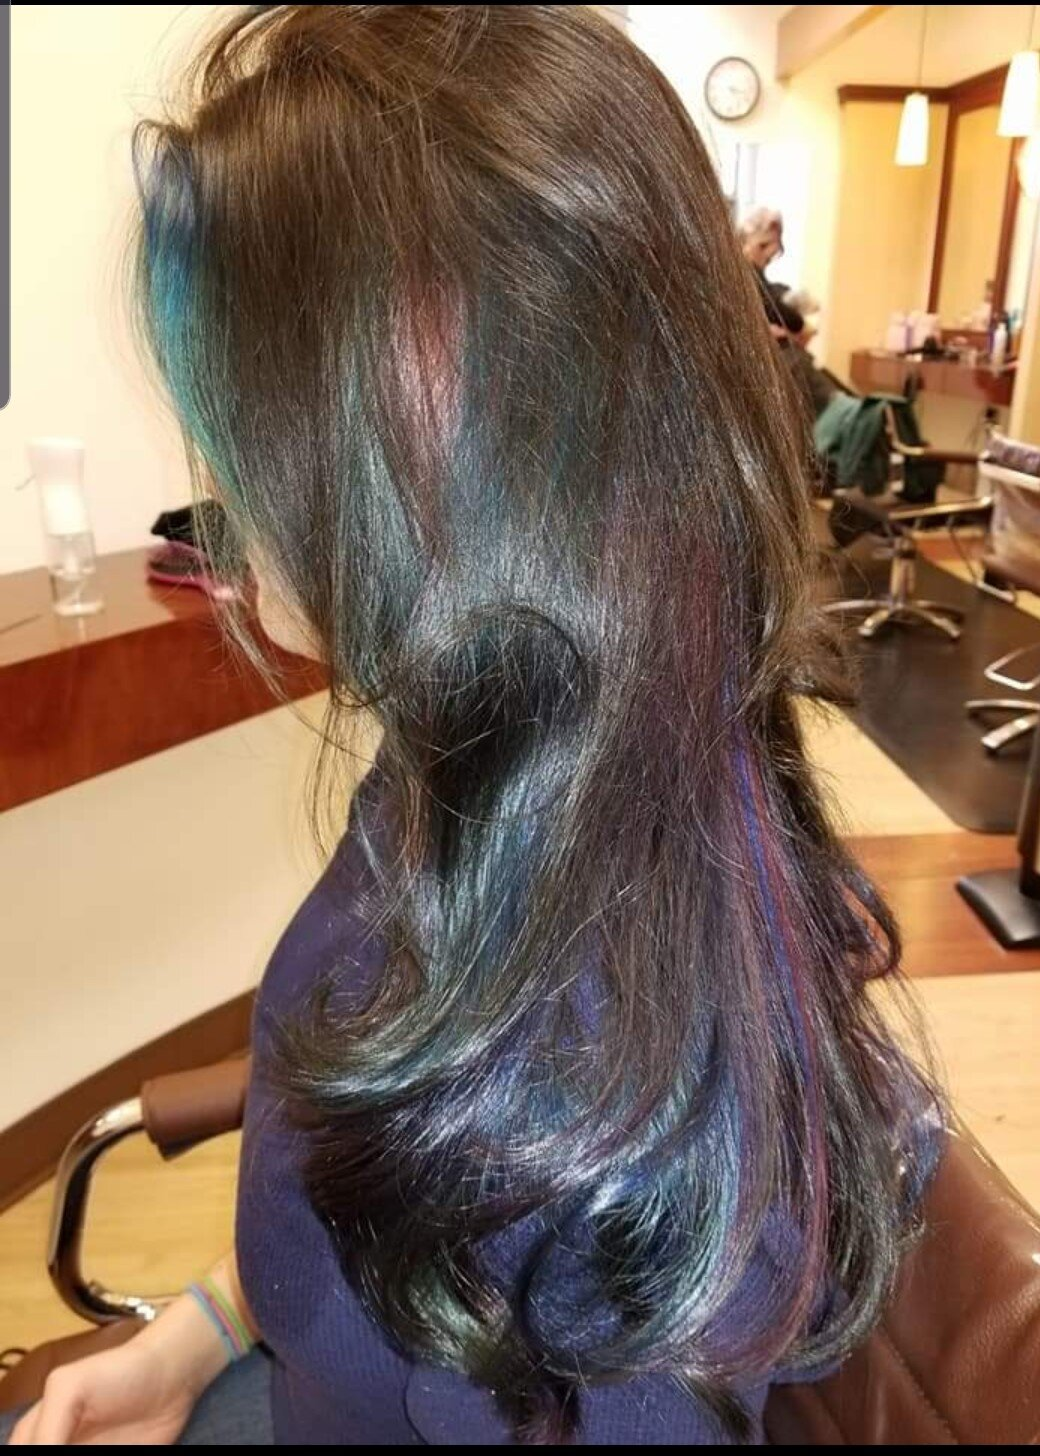 OIL SHEEN - FROM NATURAL TO AN AMAZING OIL SLICK COLOR APPLICATION!